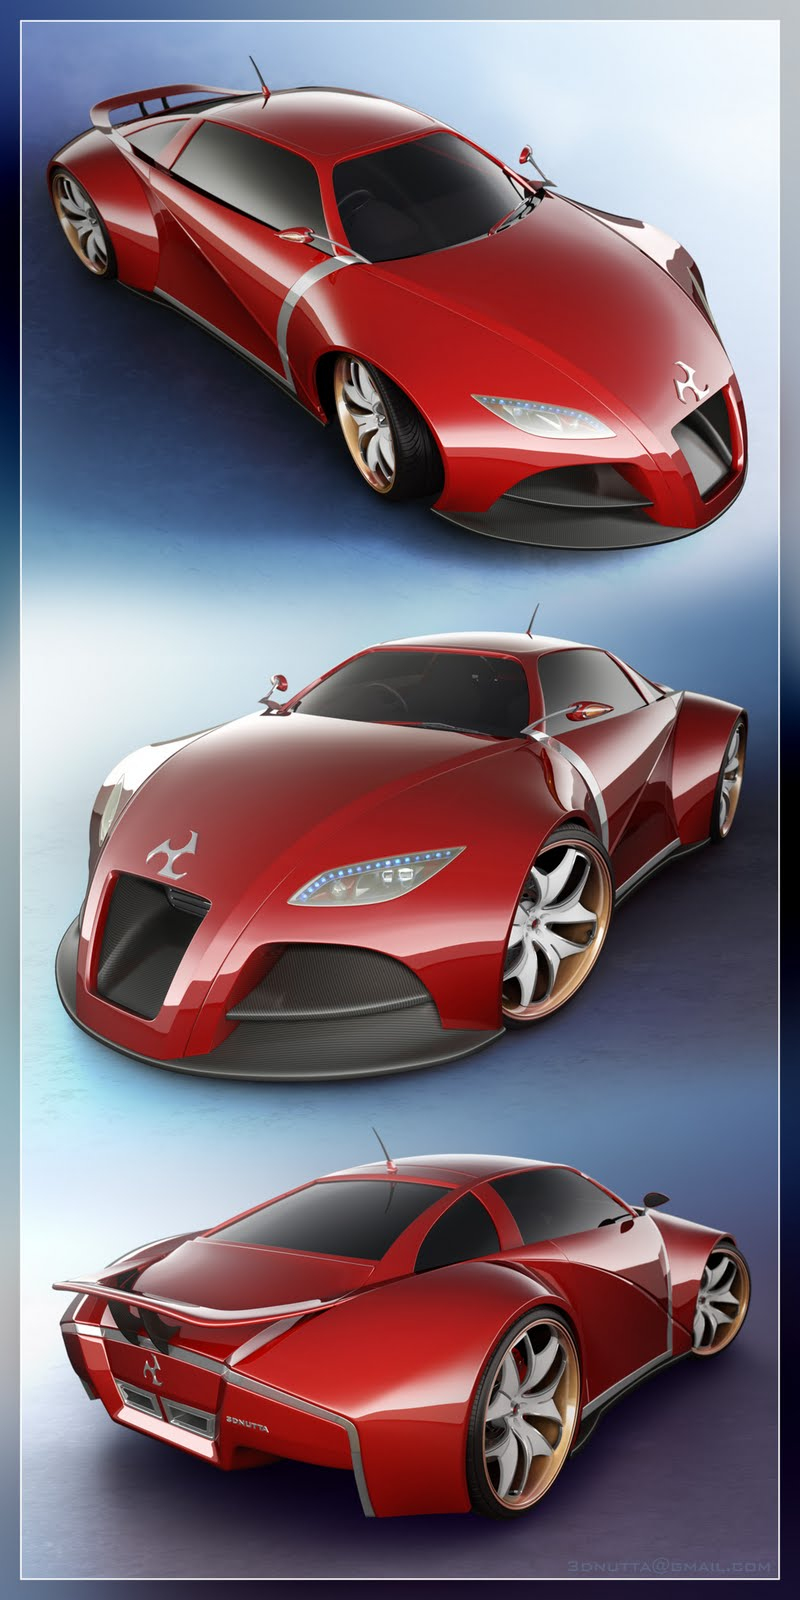 Car Concept Wallpaper 2010 - Awesome Design